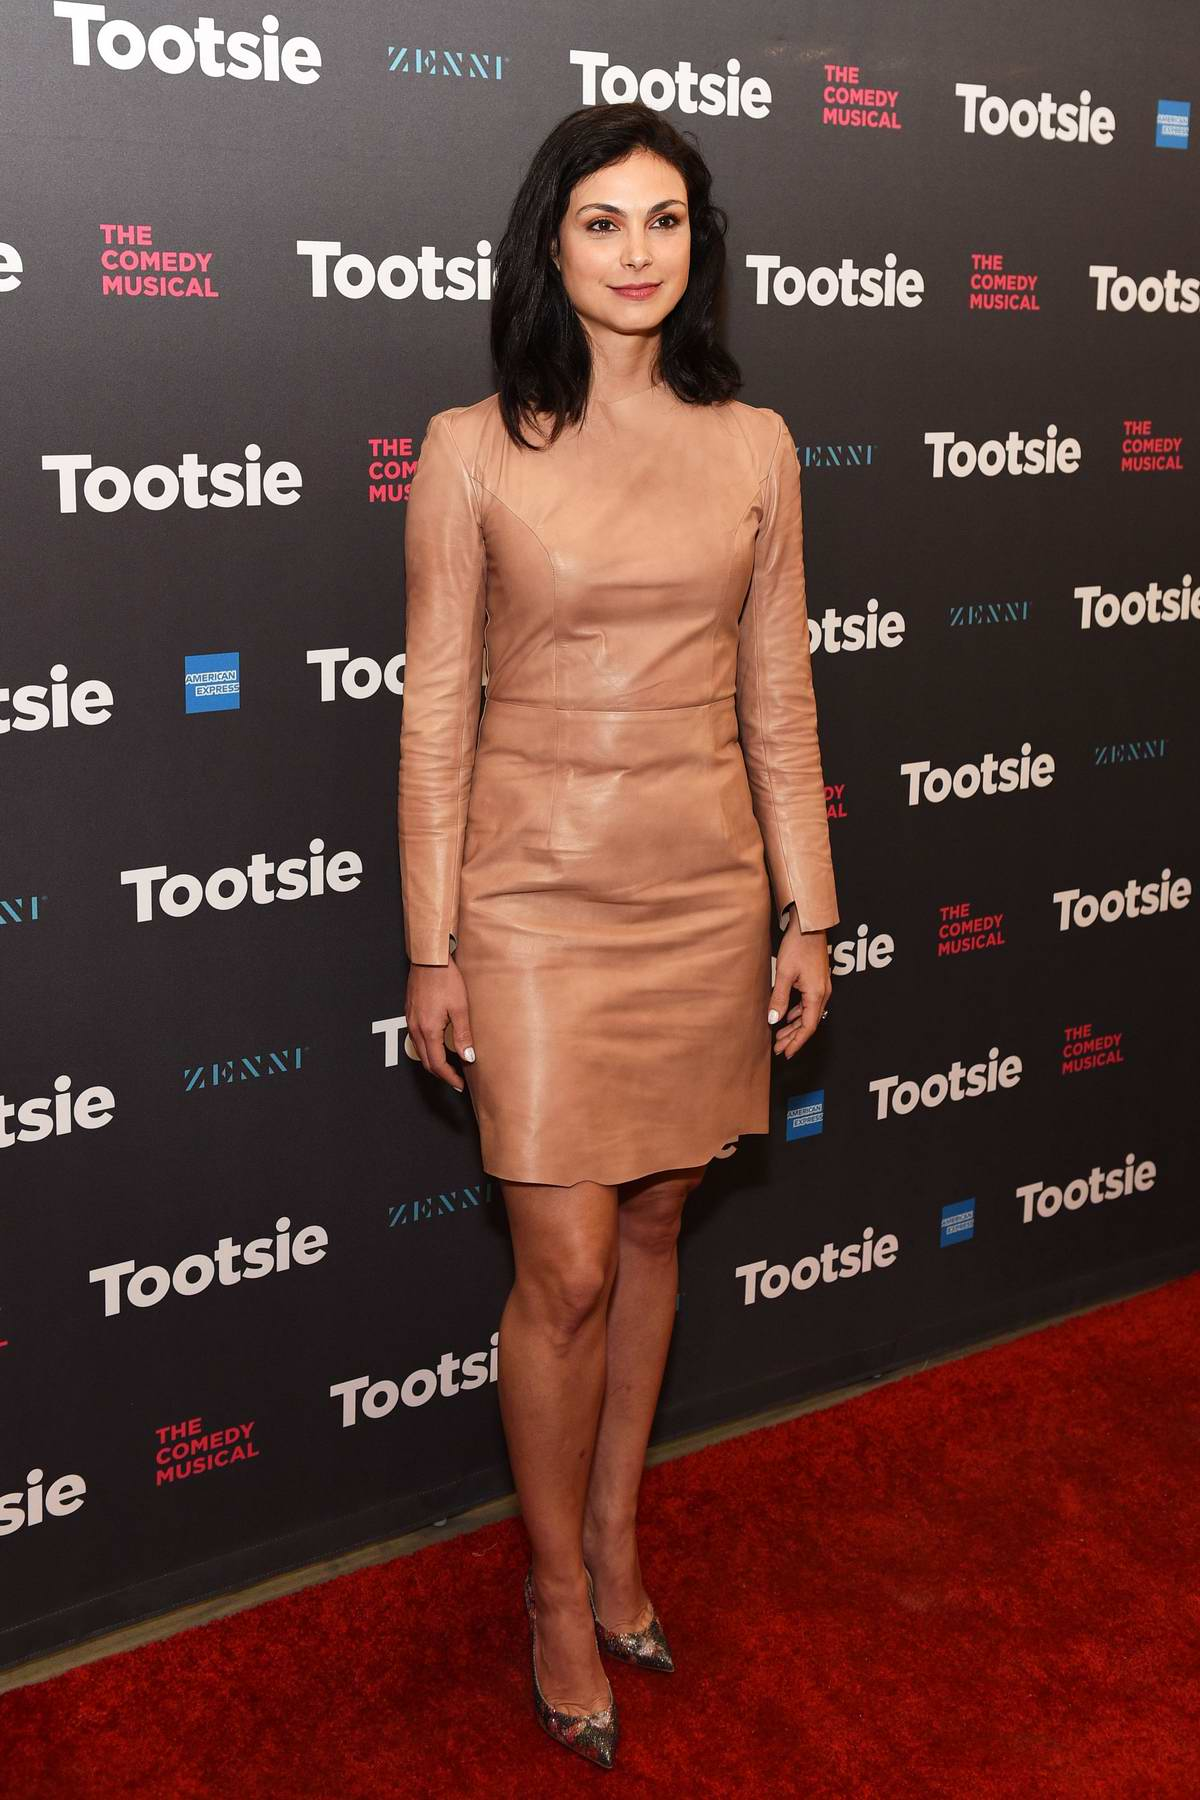 Morena Baccarin attends 'Tootsie' Broadway play opening night at Marquis Theater in New York City